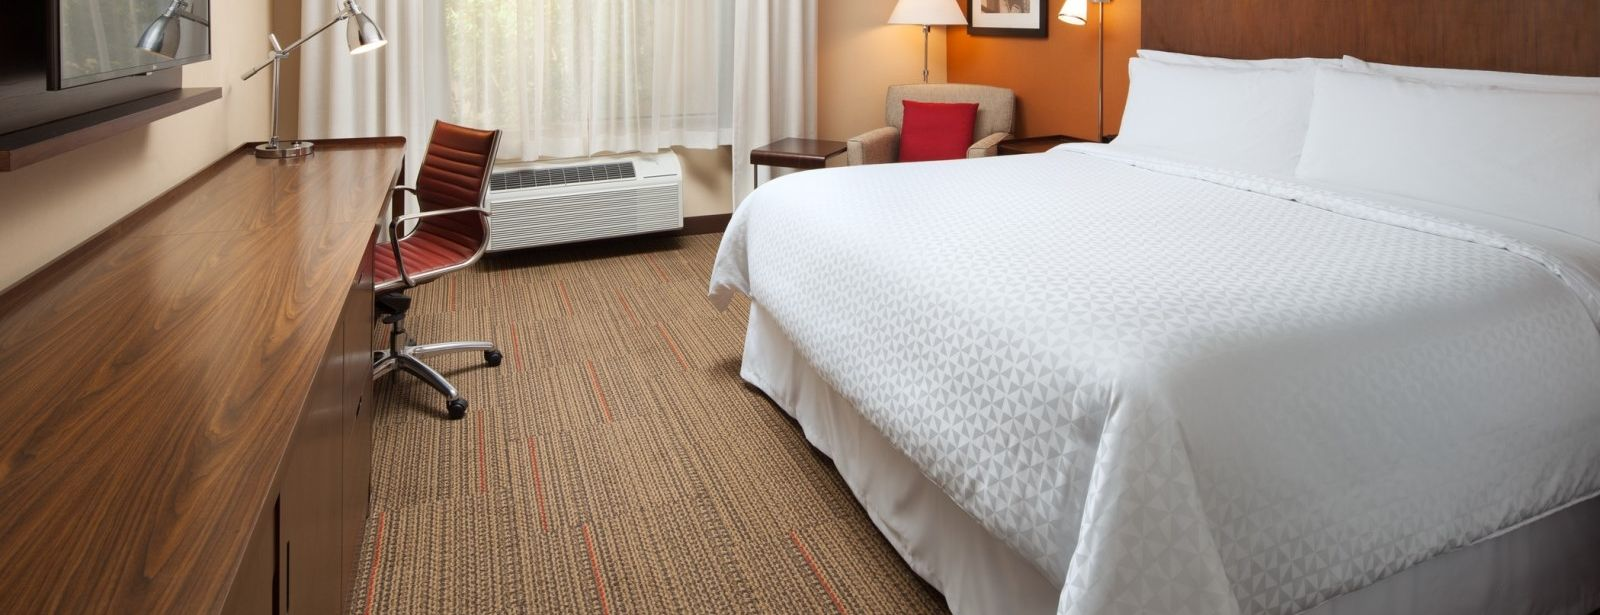 San Diego Accommodations - Accessible Guest Room